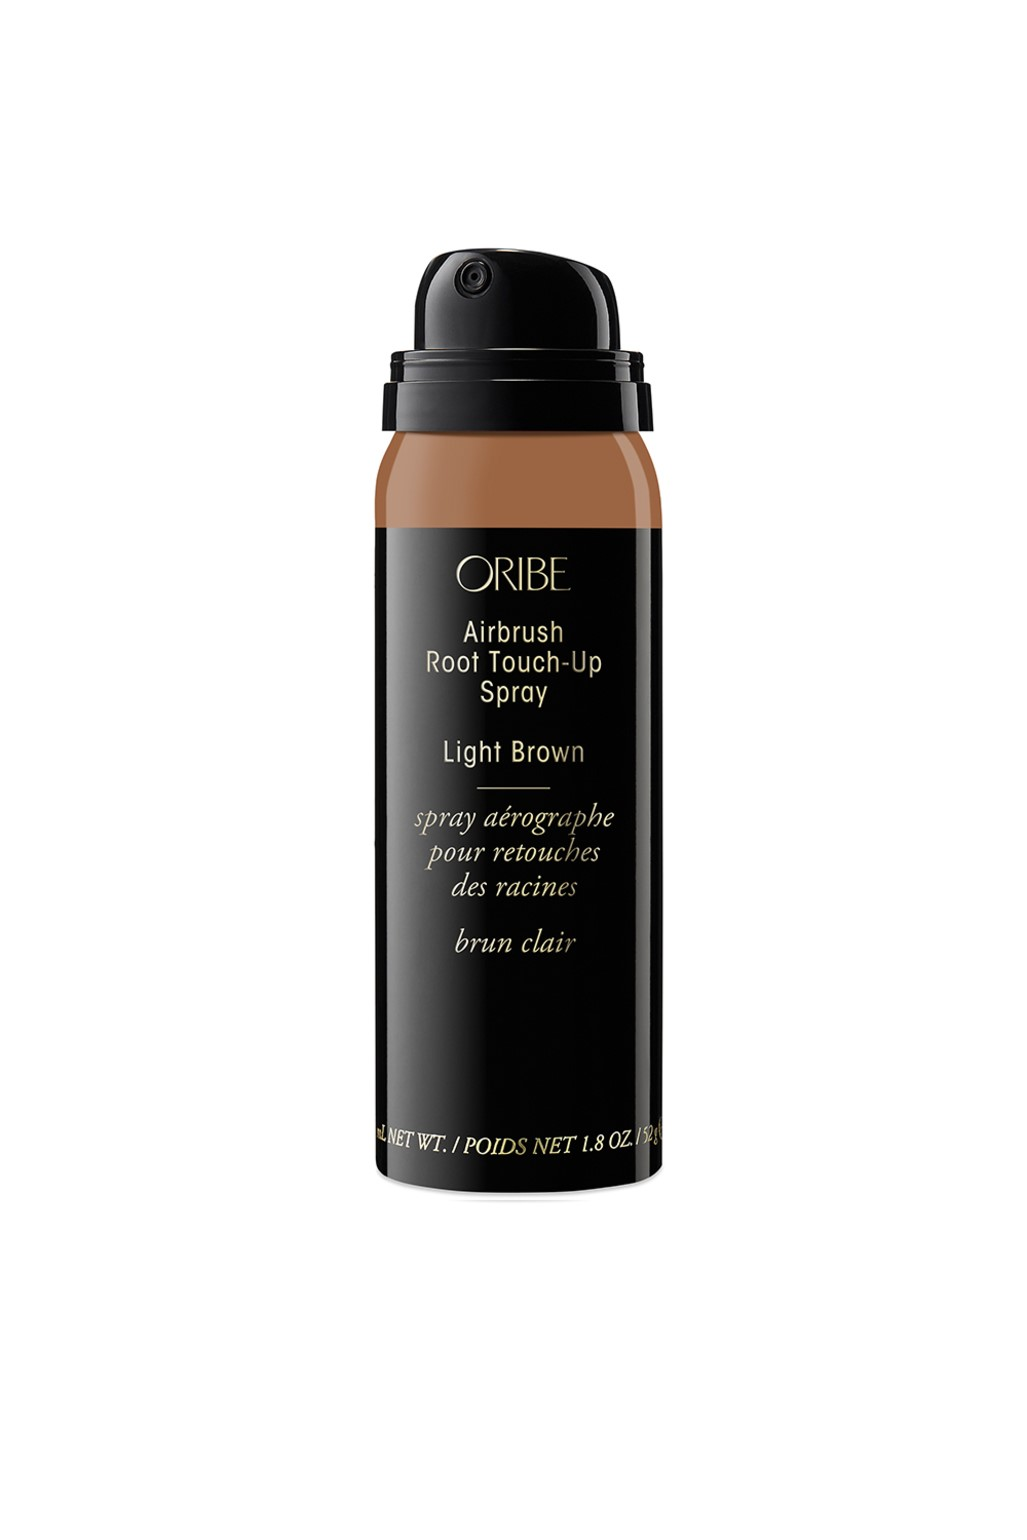 Airbrush Root Touch-Up Spray – Light Brown